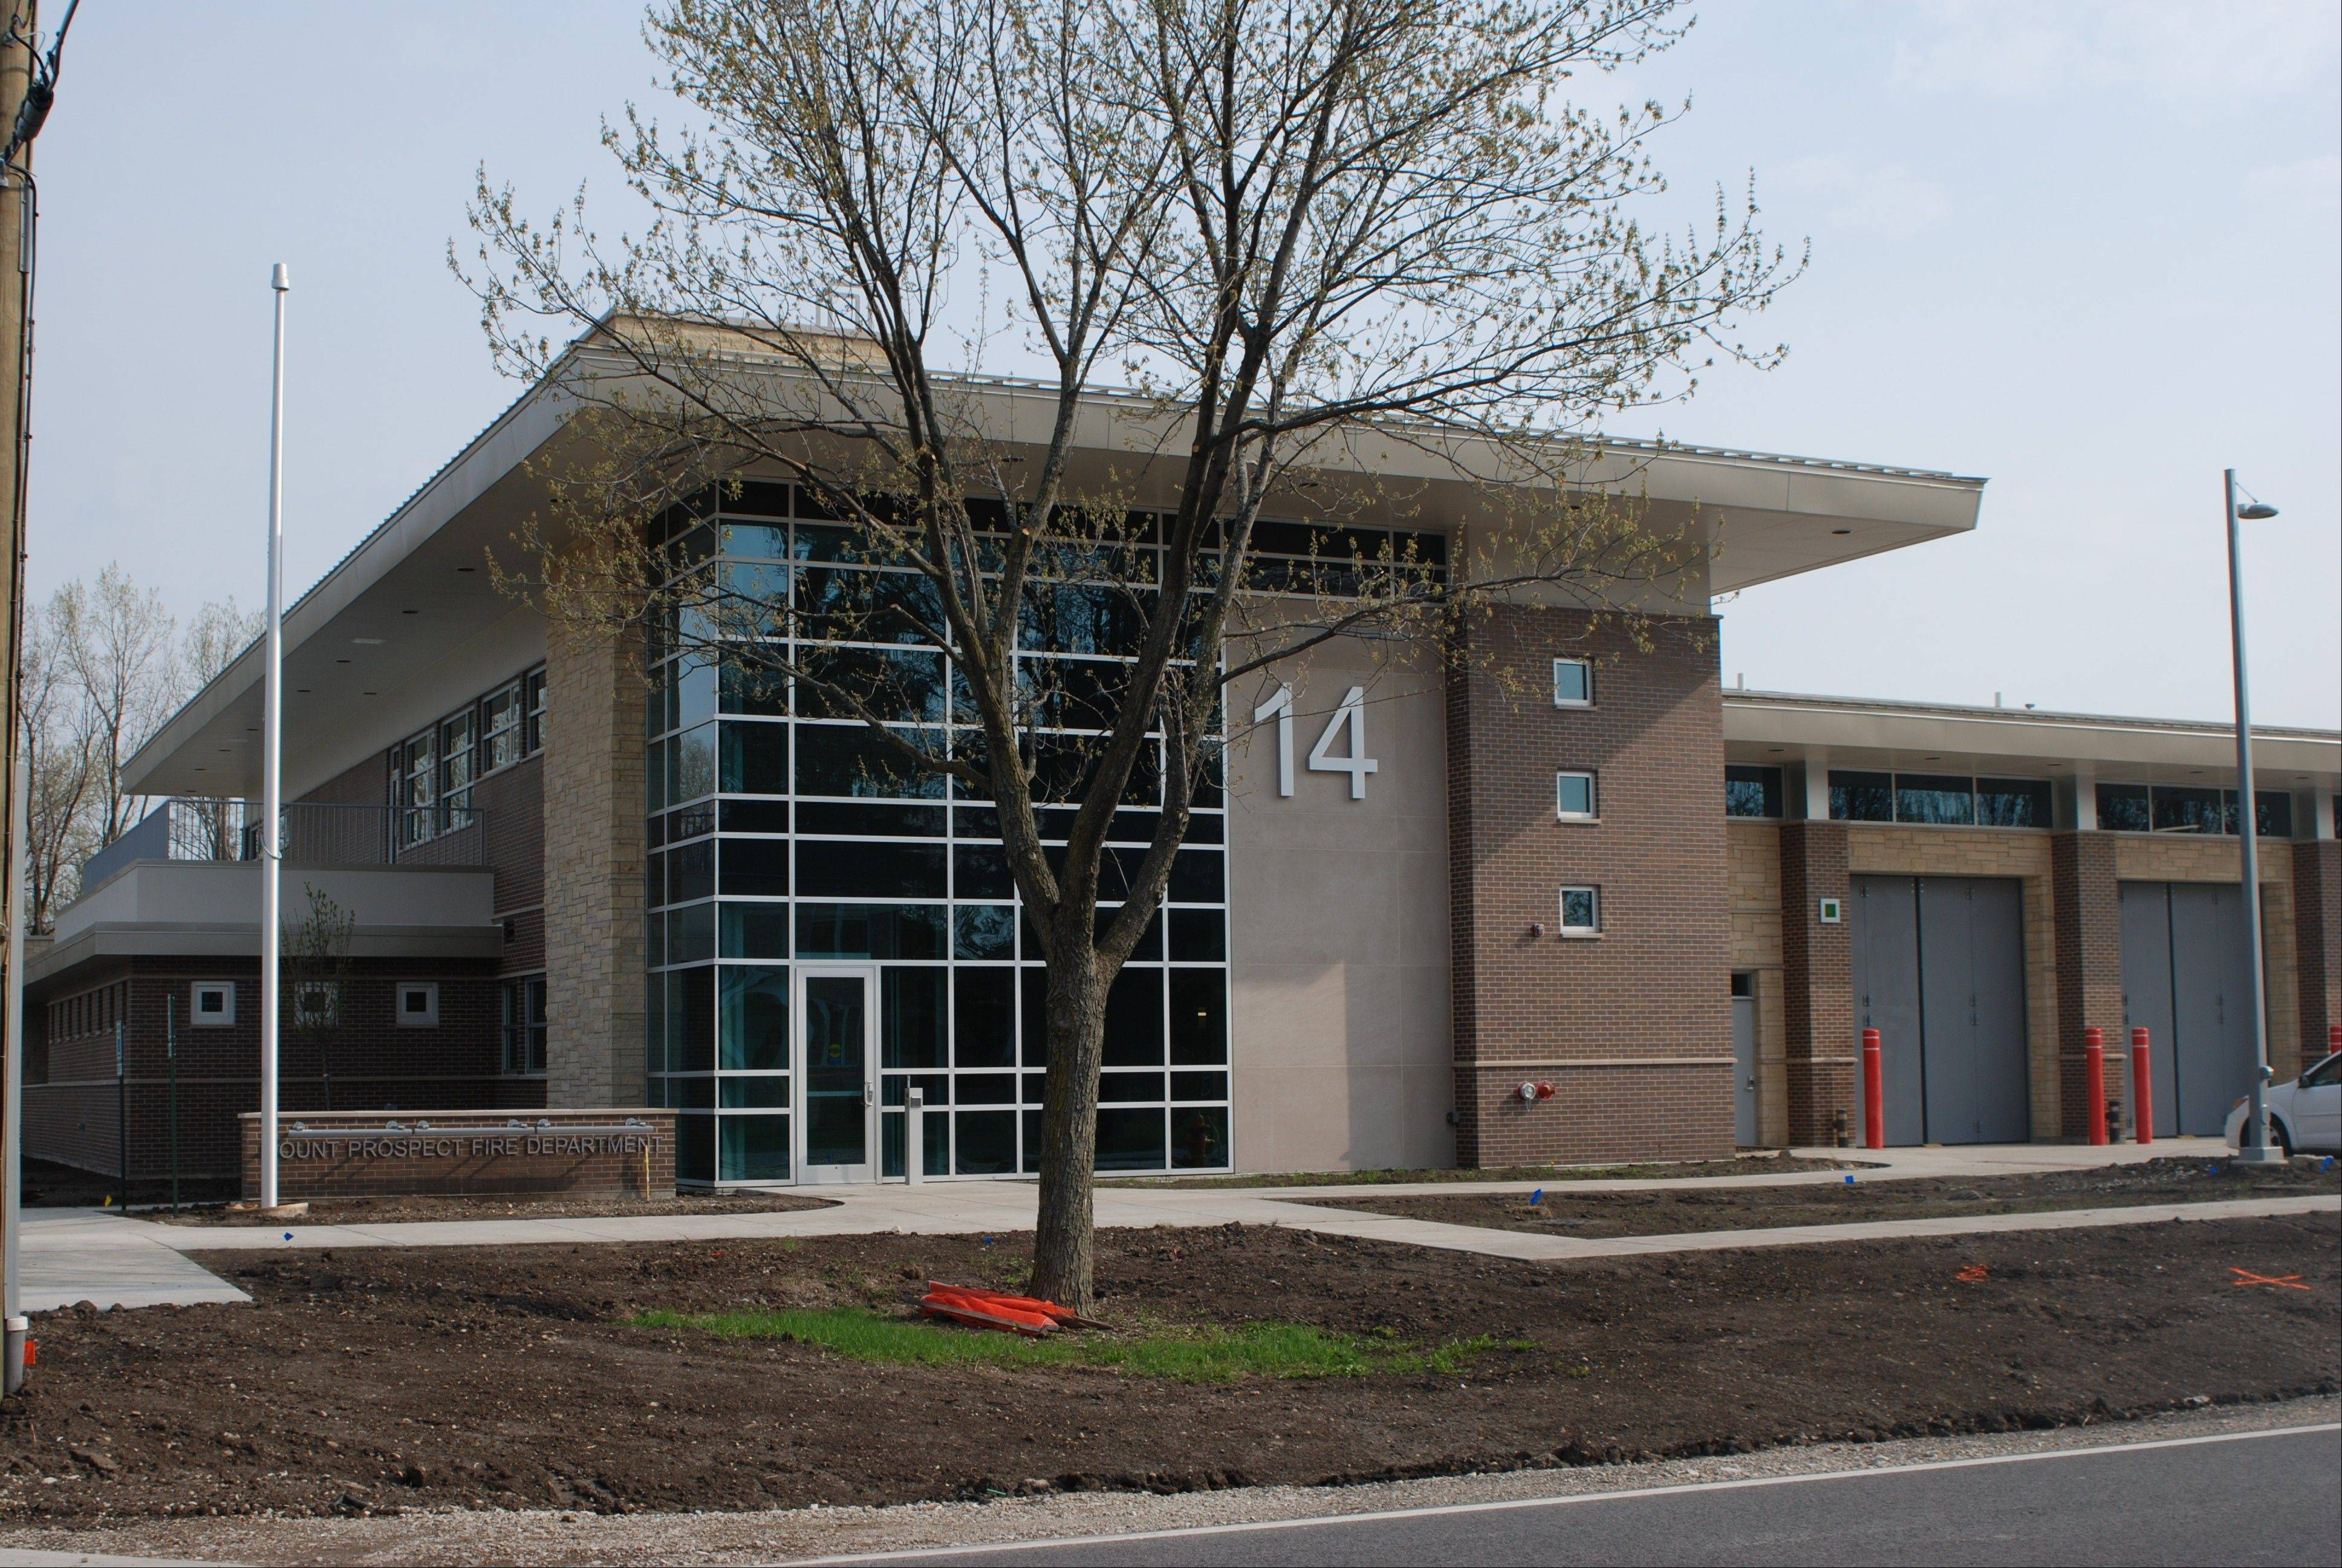 This is the Mount Prospect's newest fire station, which opened in 2010 at 2000 E. Kensington Road, replacing a building nearby that was inadequate for the department's needs.